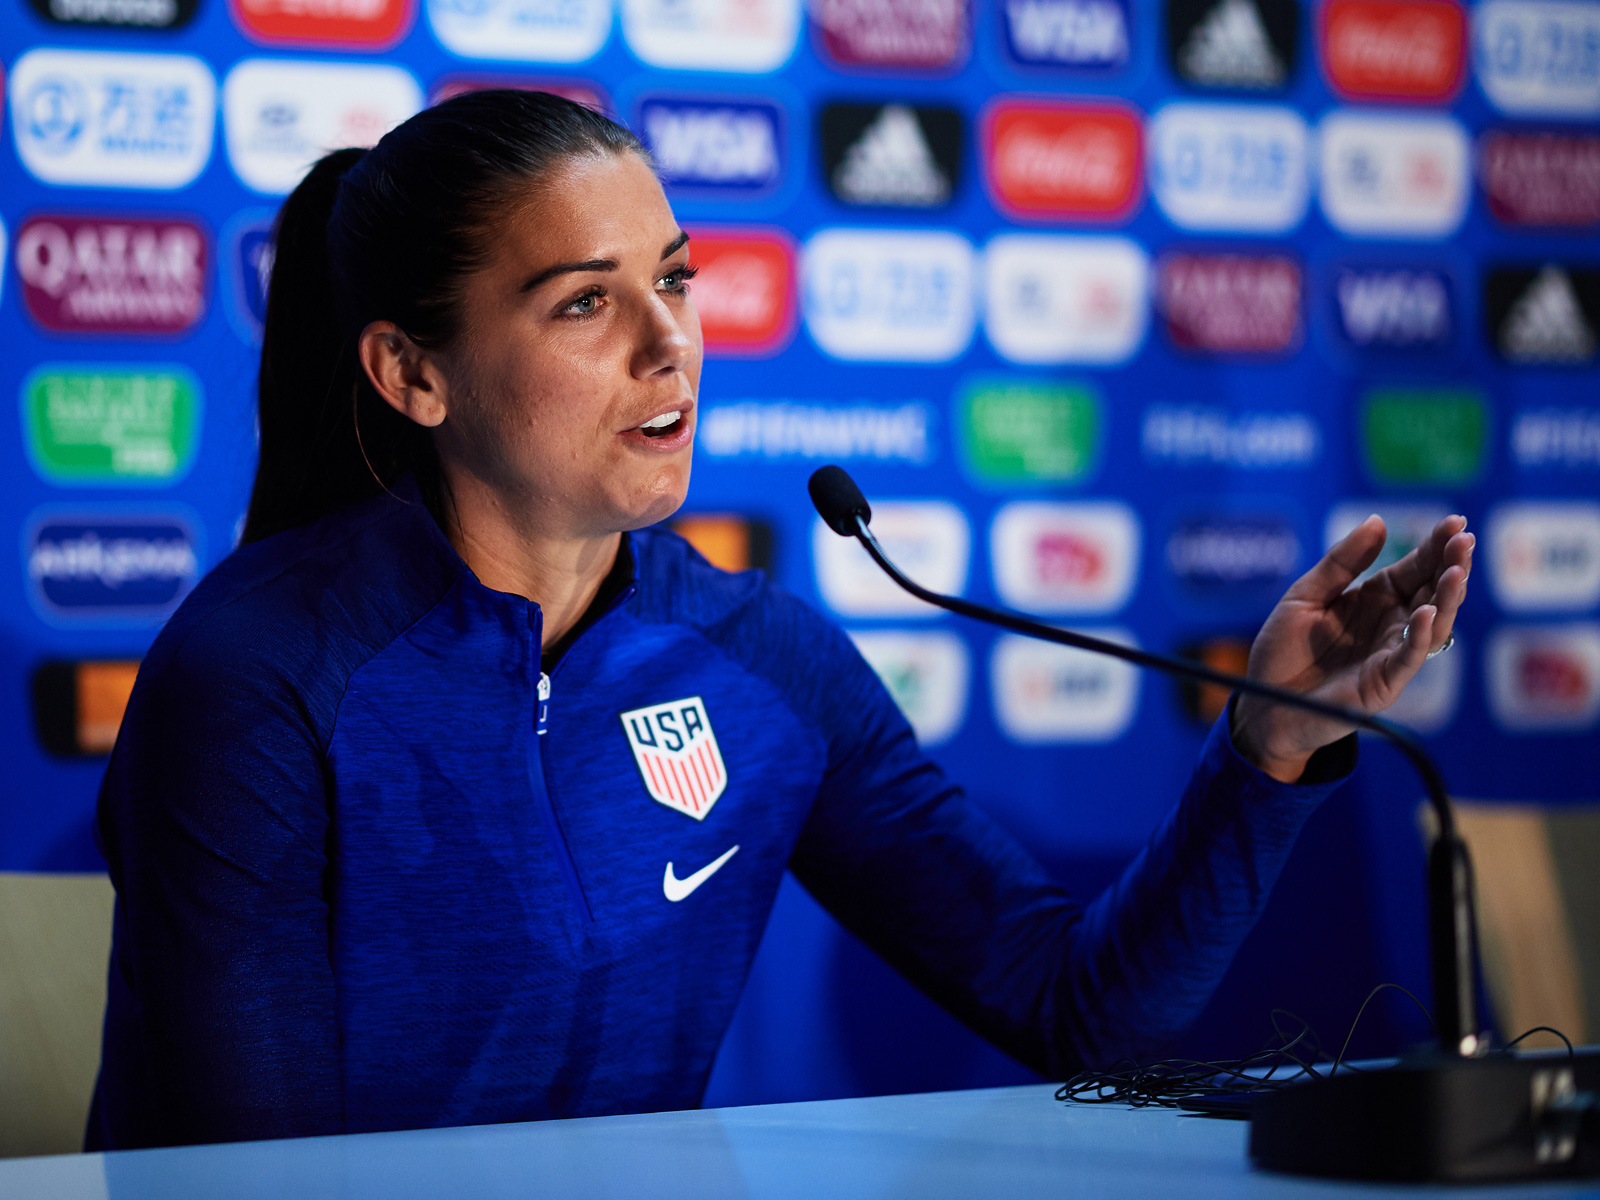 Alex Morgan and the USWNT open the Women's World Cup against Thailand